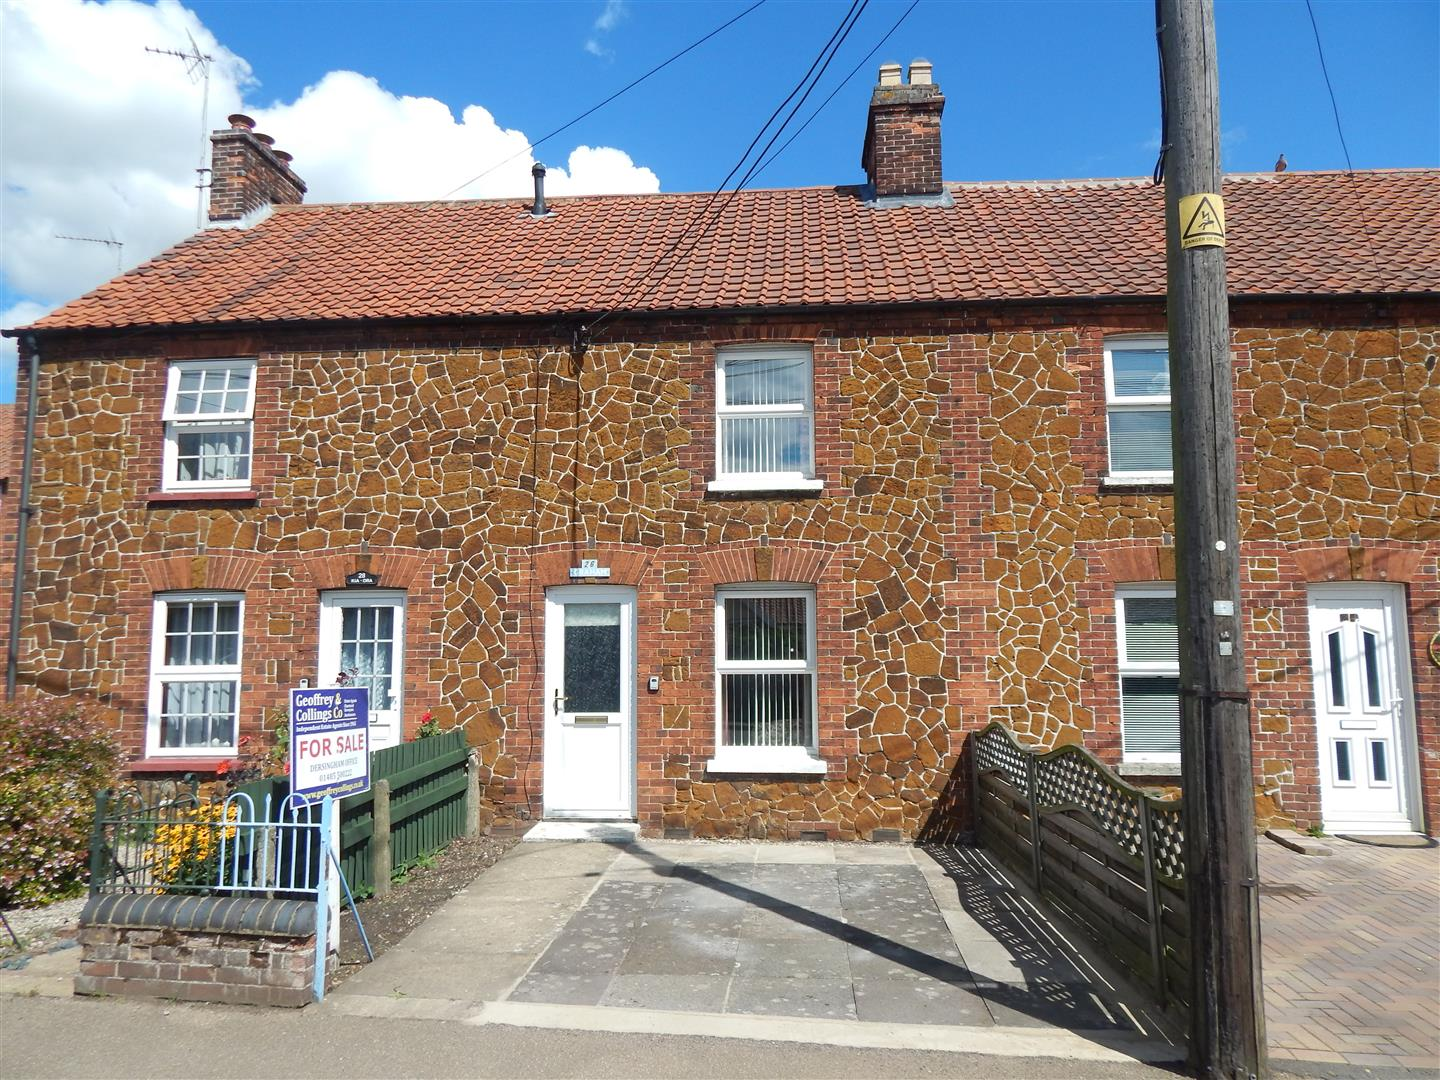 3 bed terraced house for sale in Hunstanton Road, King's Lynn - Property Image 1